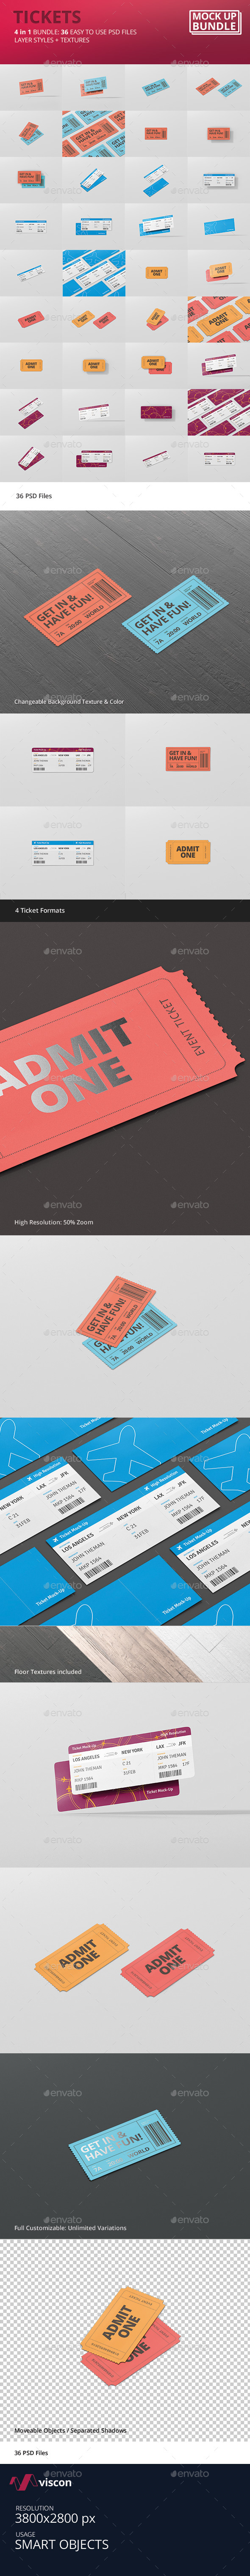 Ticket Mockup Bundle - Miscellaneous Print